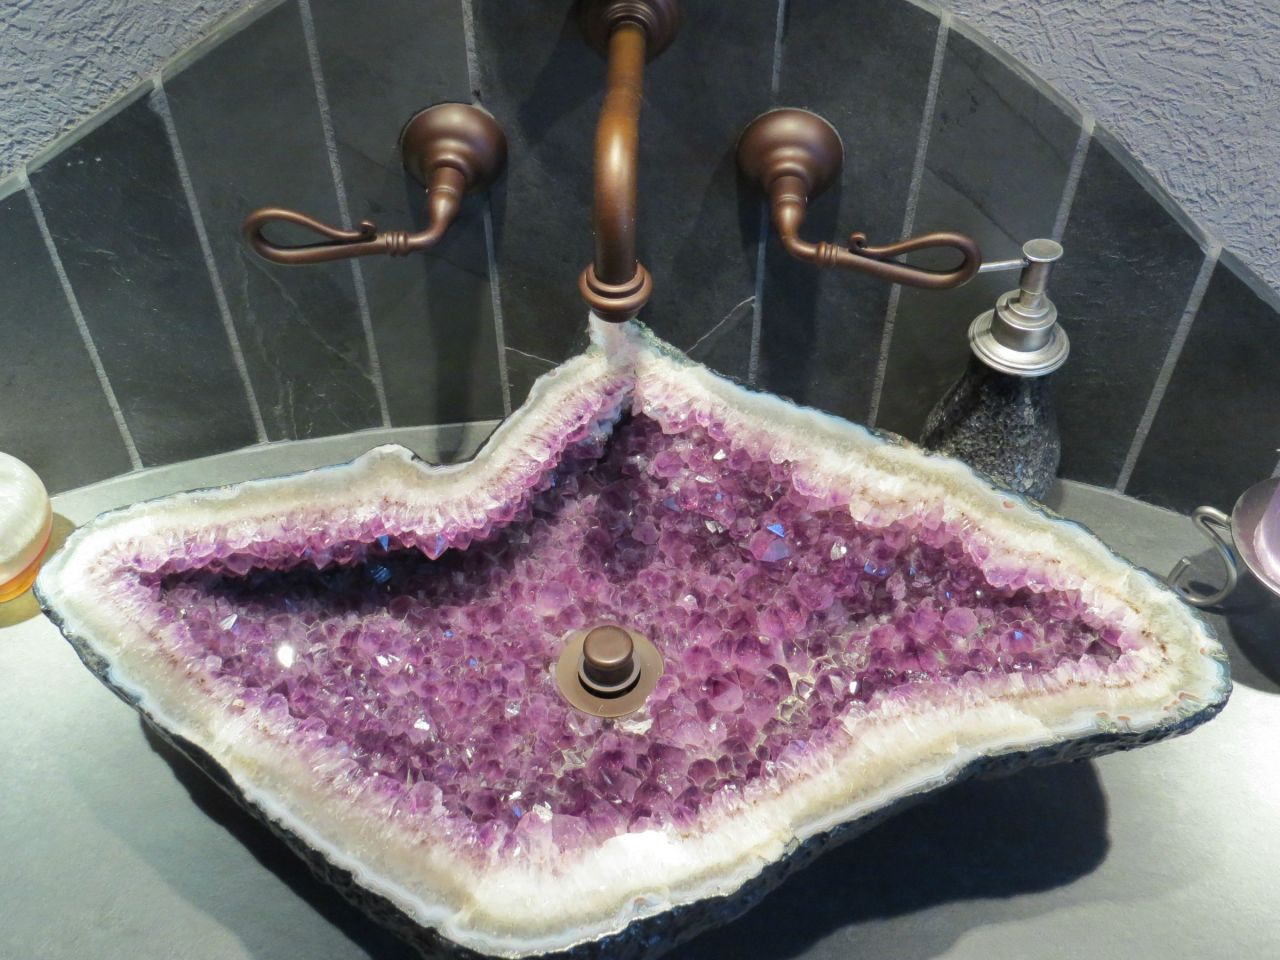 ifuckingloveminerals:  As pretty as Brazilian amethyst vugs are, they are still full of crystals. Cleaning this thing would be like trying to floss a Megalodon. Whoever came up with the idea is an evil genius.